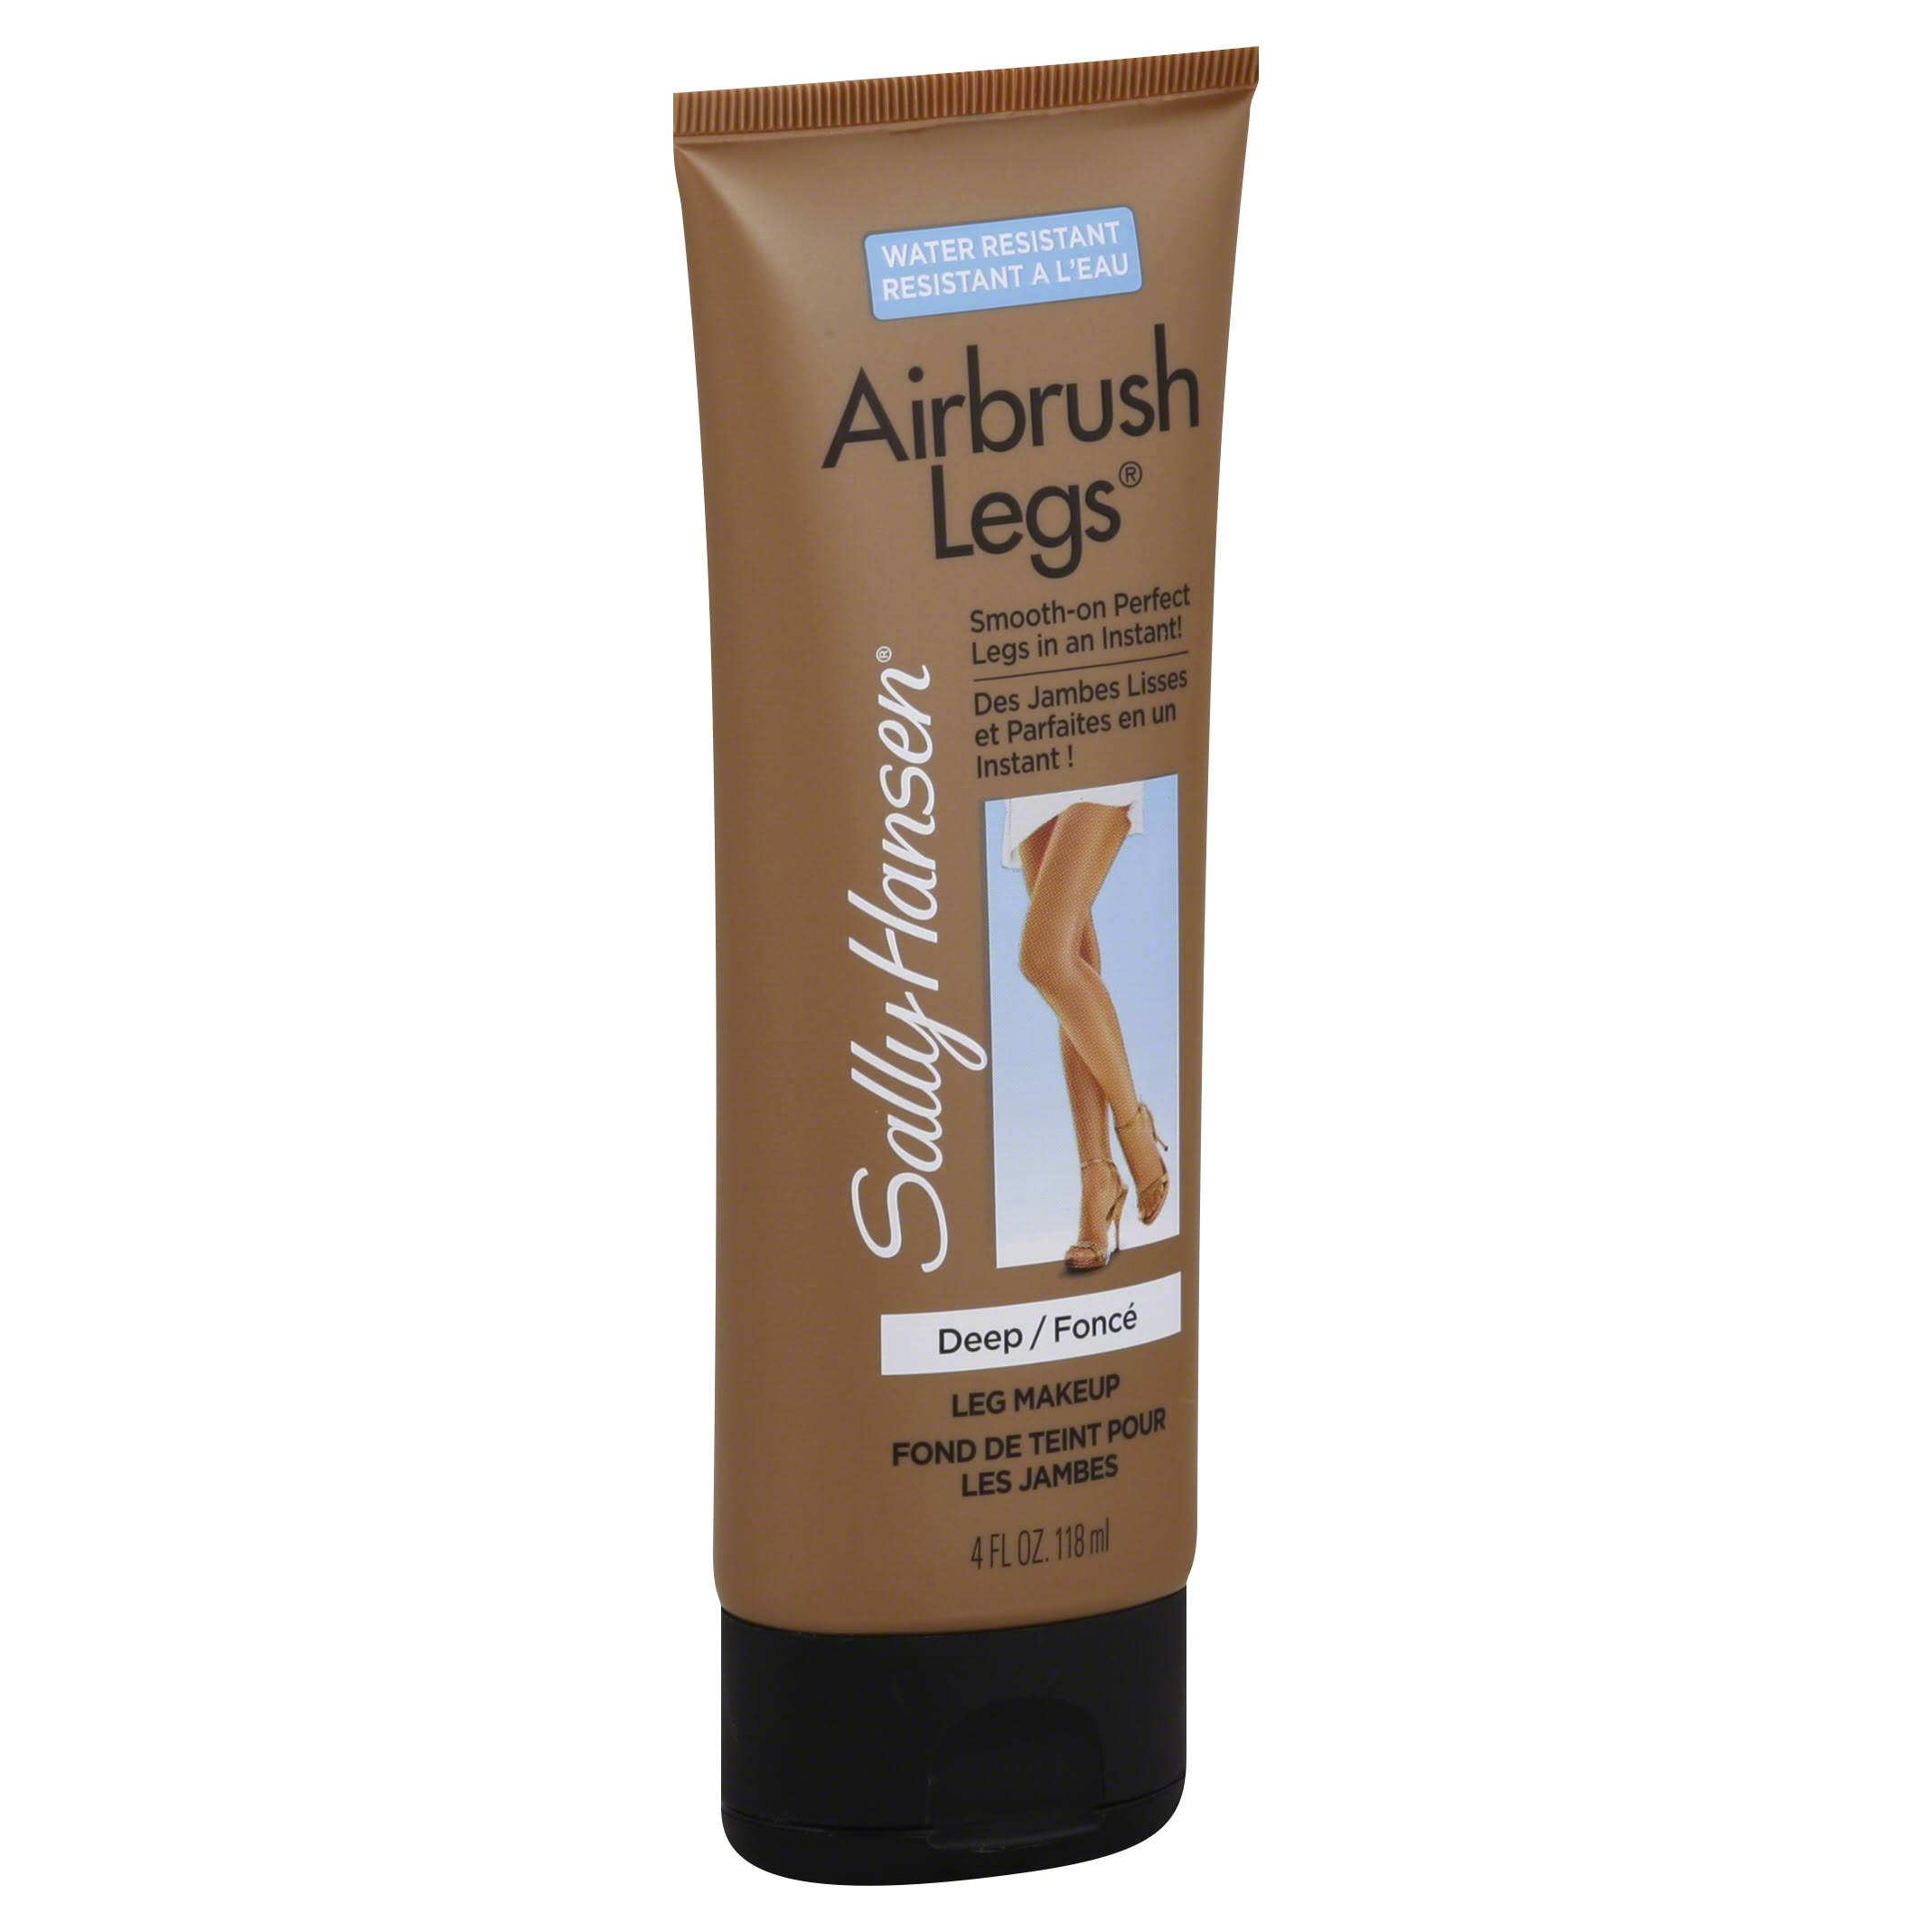 Sally Hansen Airbrush Legs Leg Makeup - 118ml